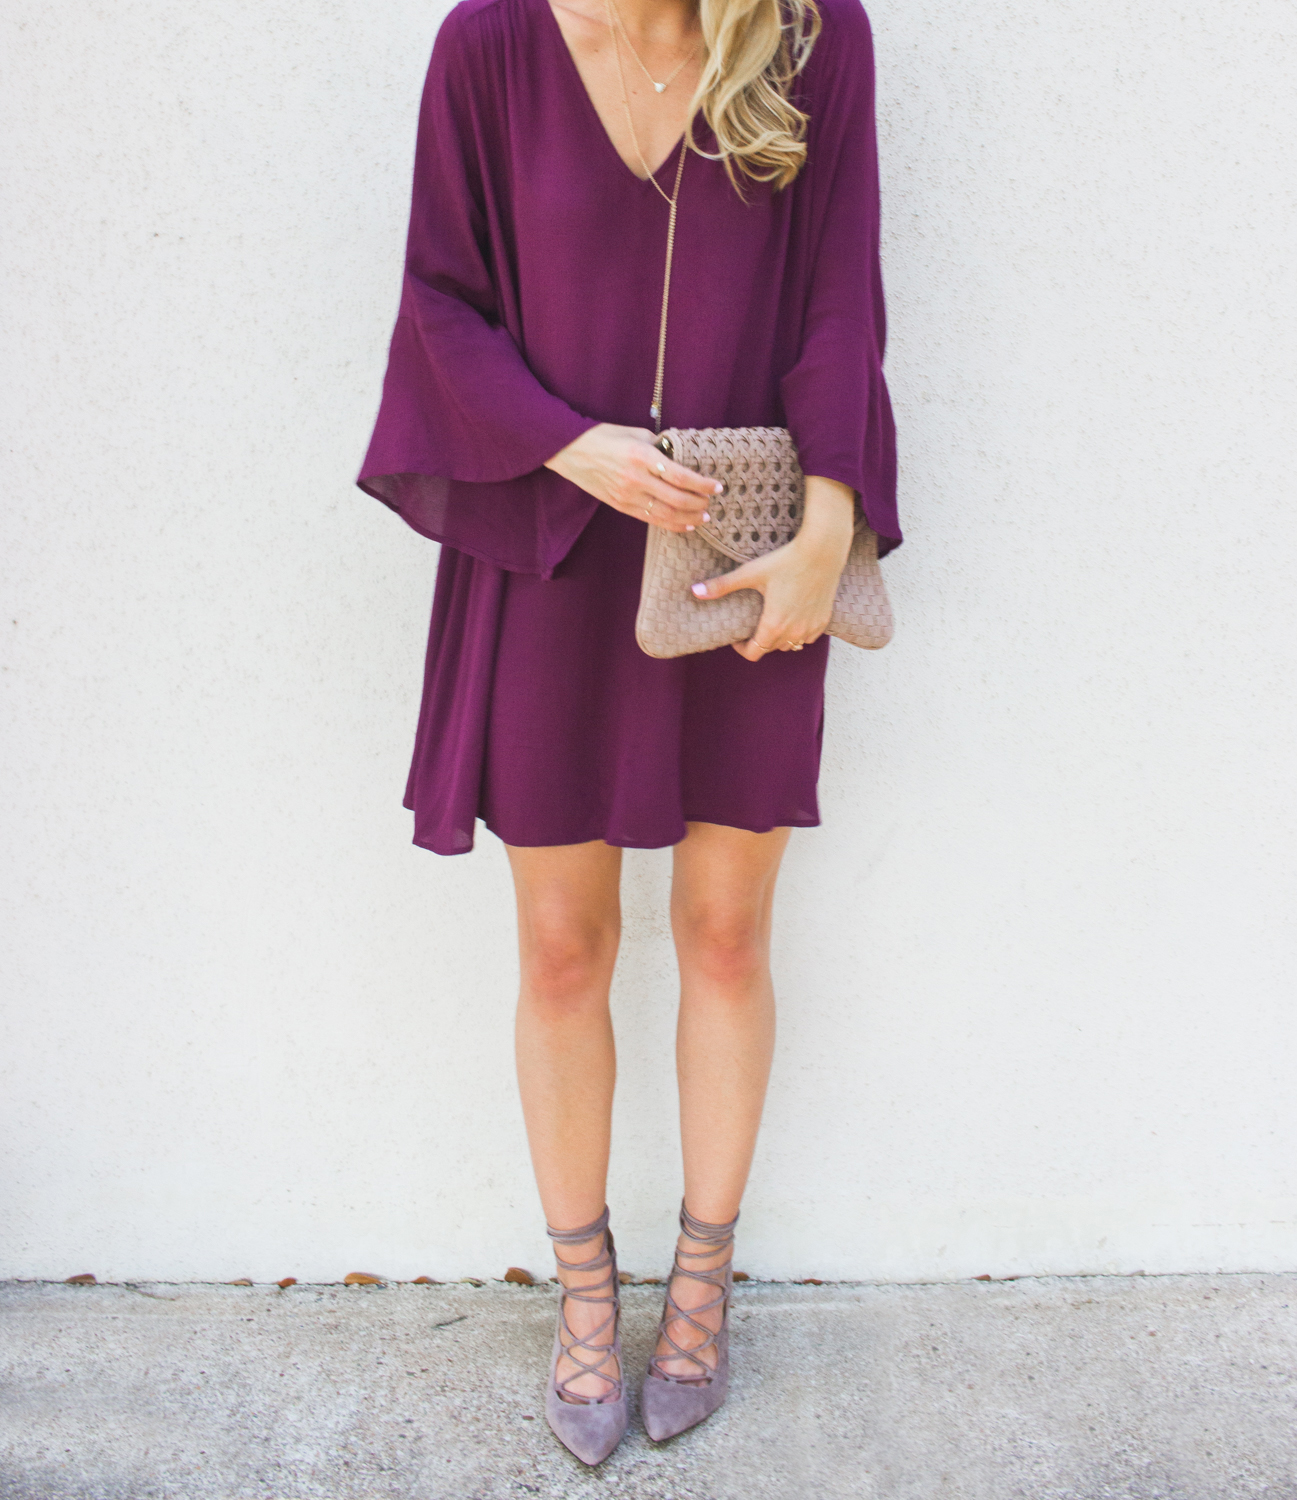 livvyland-blog-olivia-watson-austin-texas-fashion-blogger-bell-sleeve-maroon-wine-burgundy-oxblood-dress-lace-up-heels-1